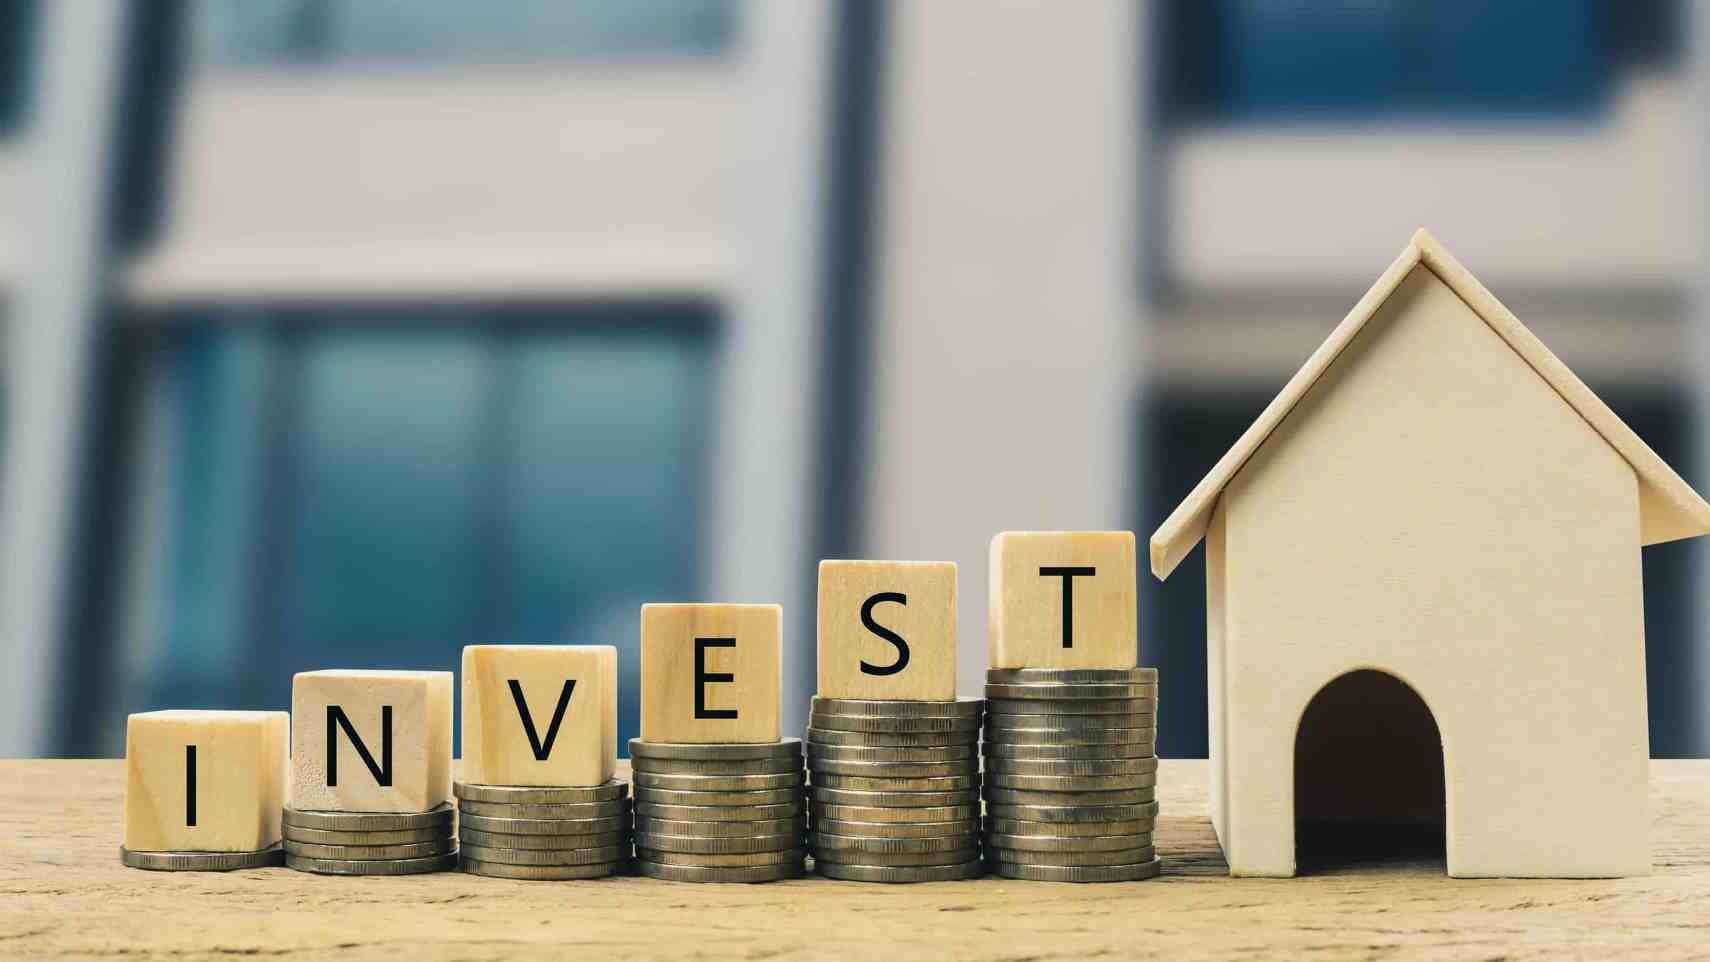 Is real estate the right investment option versus others?